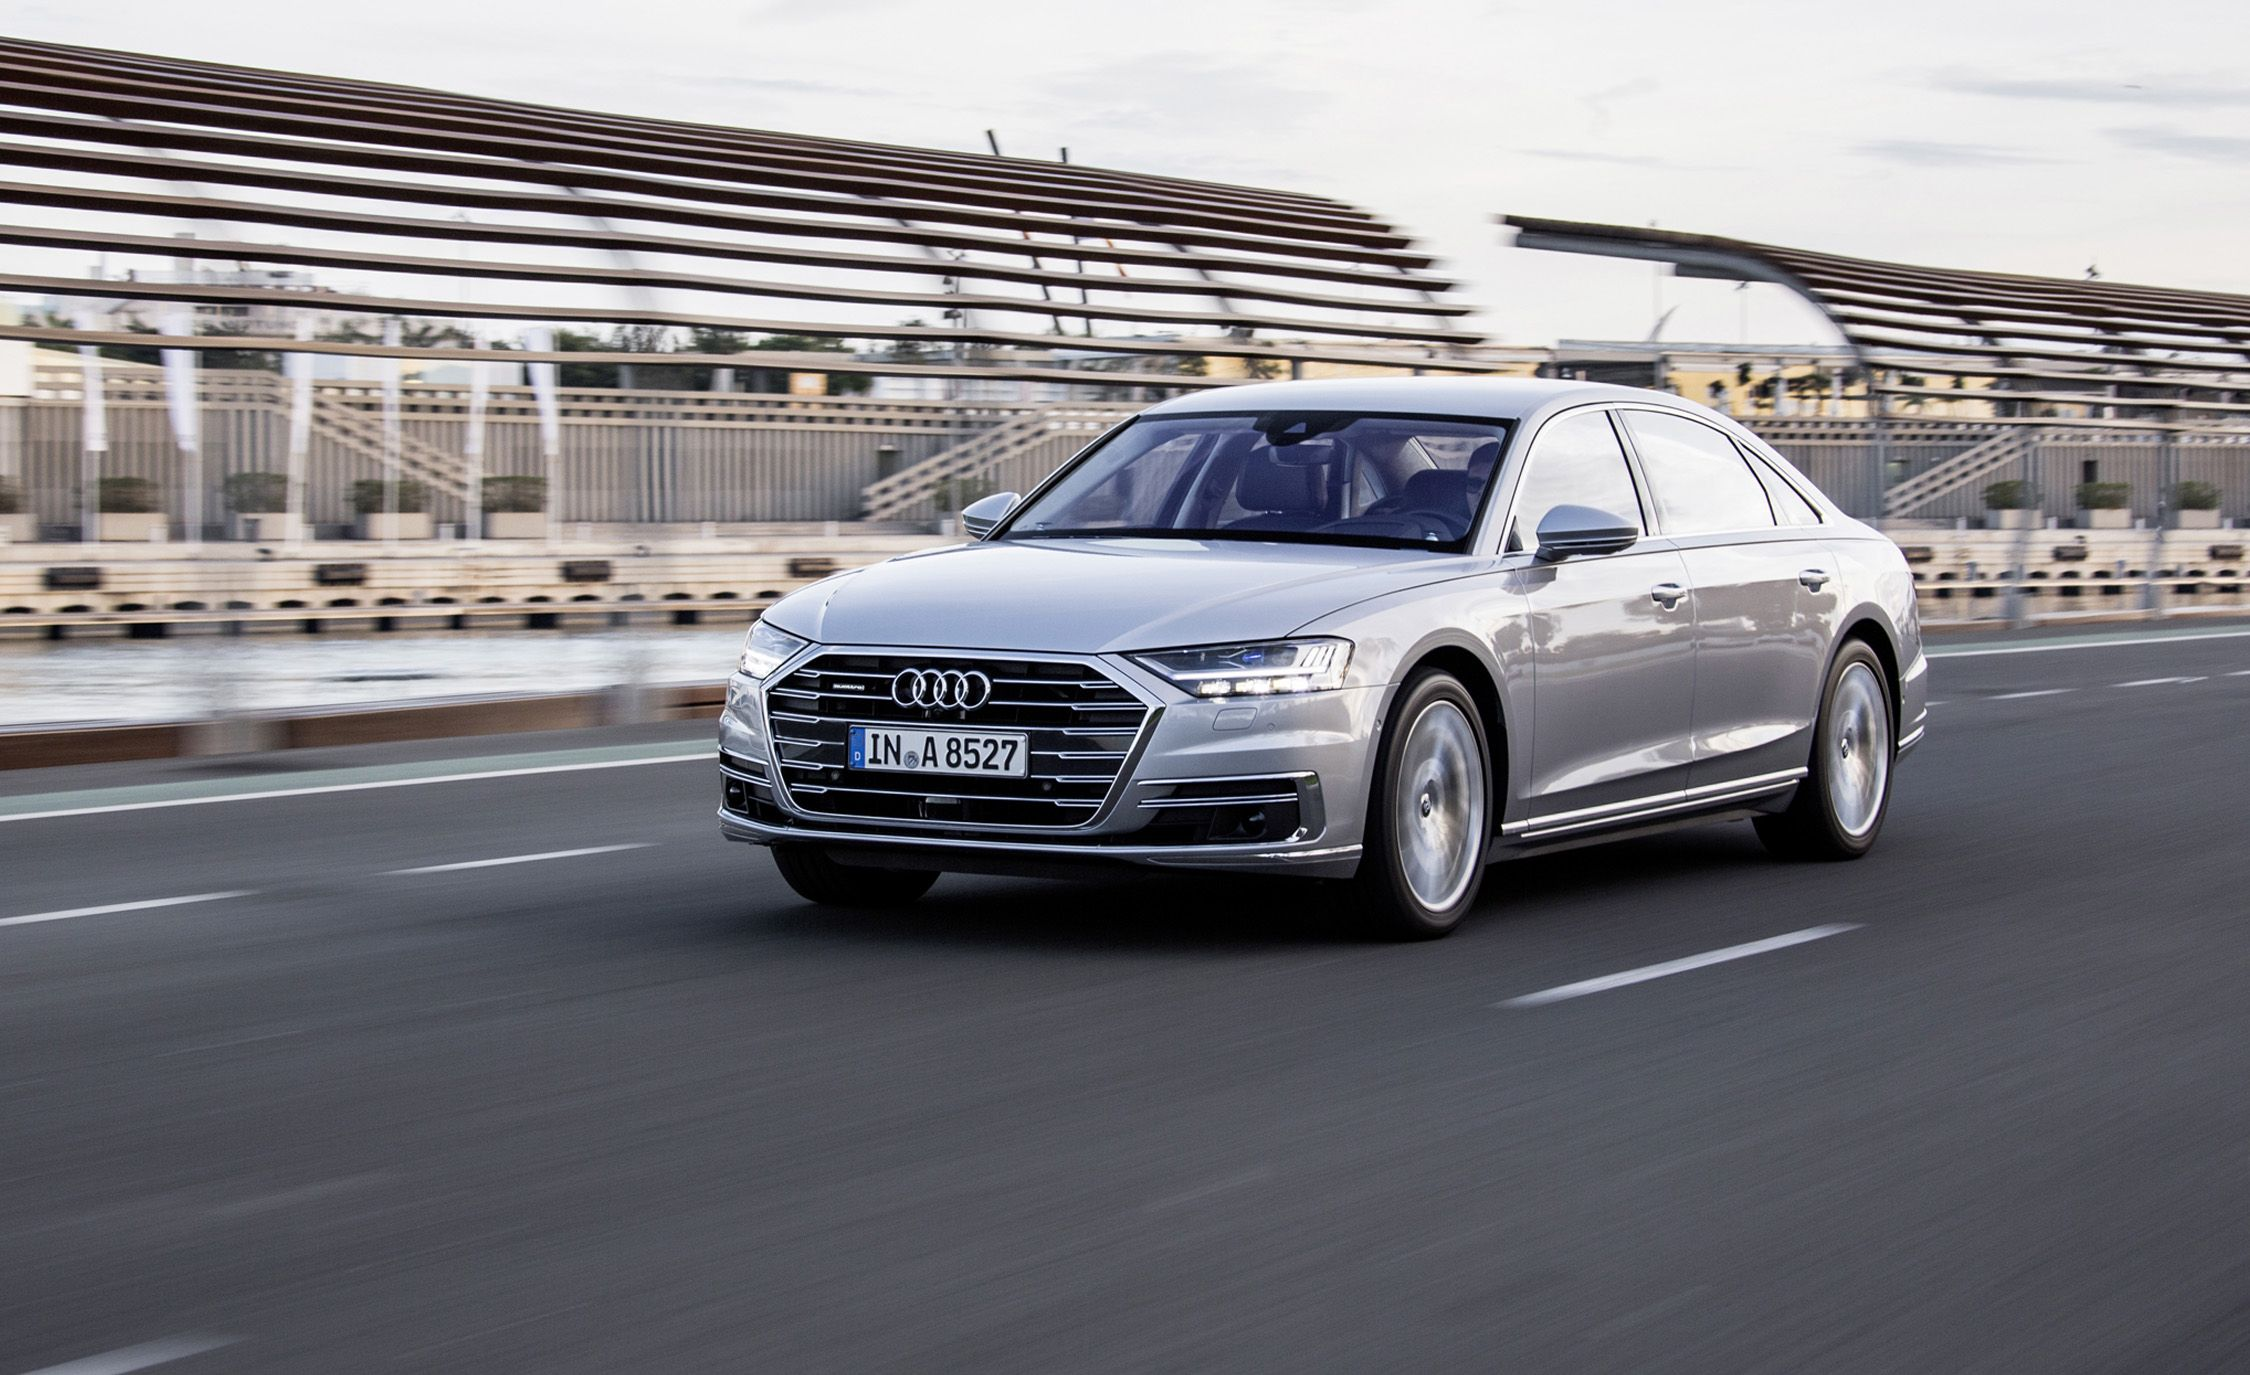 Audi A8 Reviews Audi A8 Price s and Specs